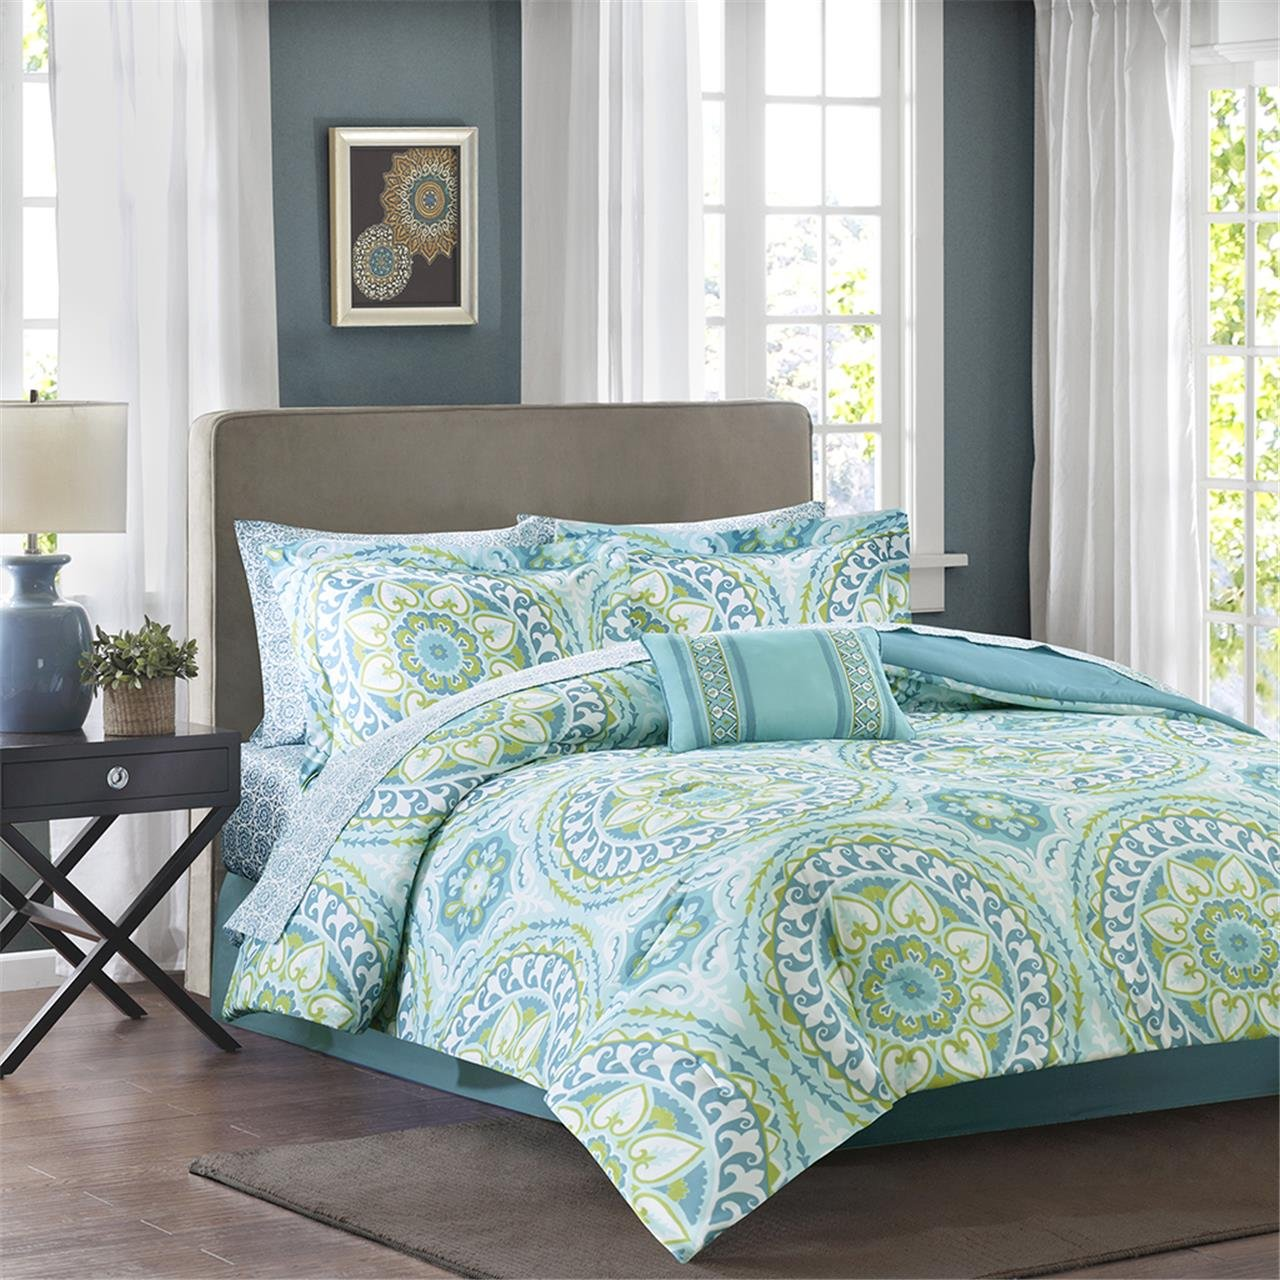 Aqua Bedding Comforter Sets and Quilts Sale \u2013 Ease Bedding with Style